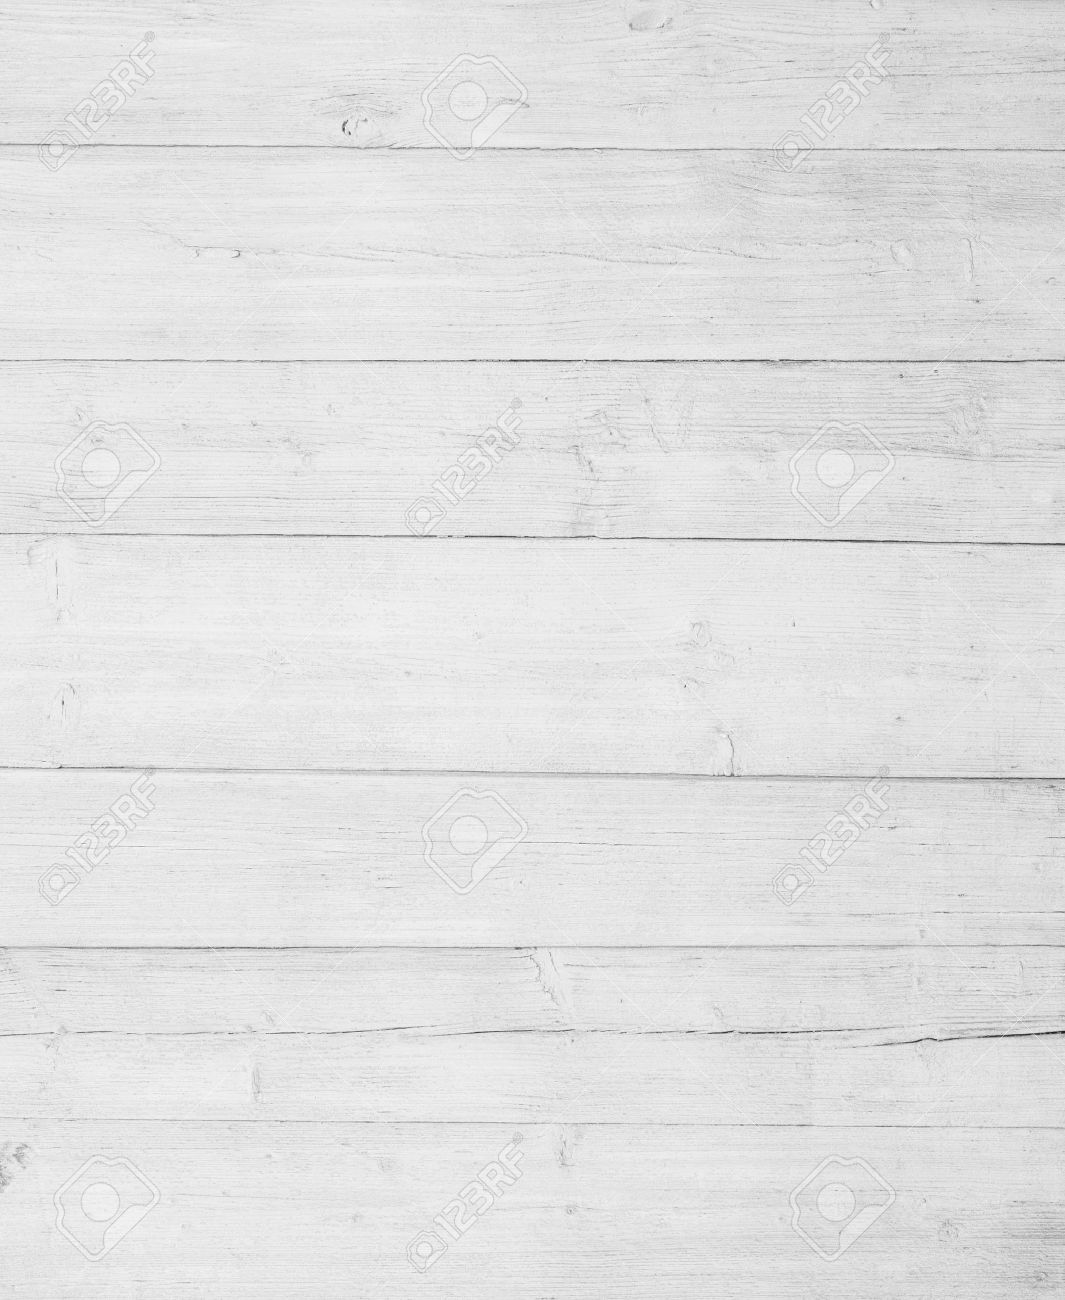 White wood table texture - White Painted Wall Fence Floor Or Table Surface Wooden Texture Stock Photo 43561335